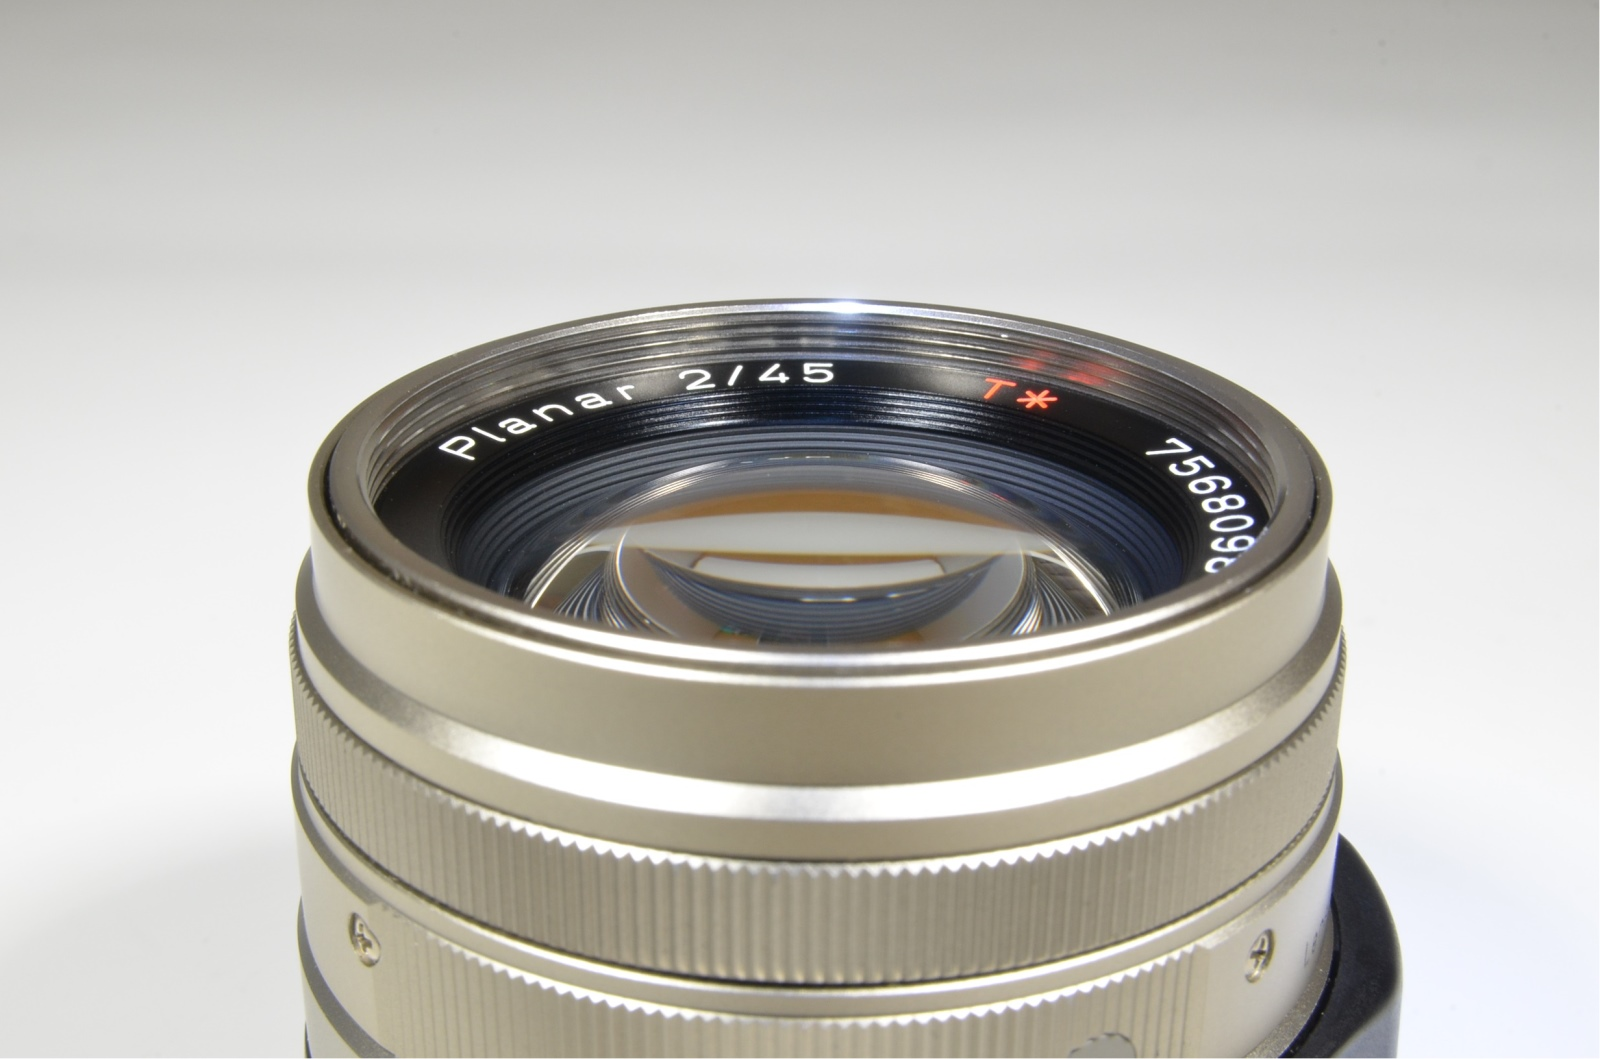 contax carl zeiss planar t* 45mm f2